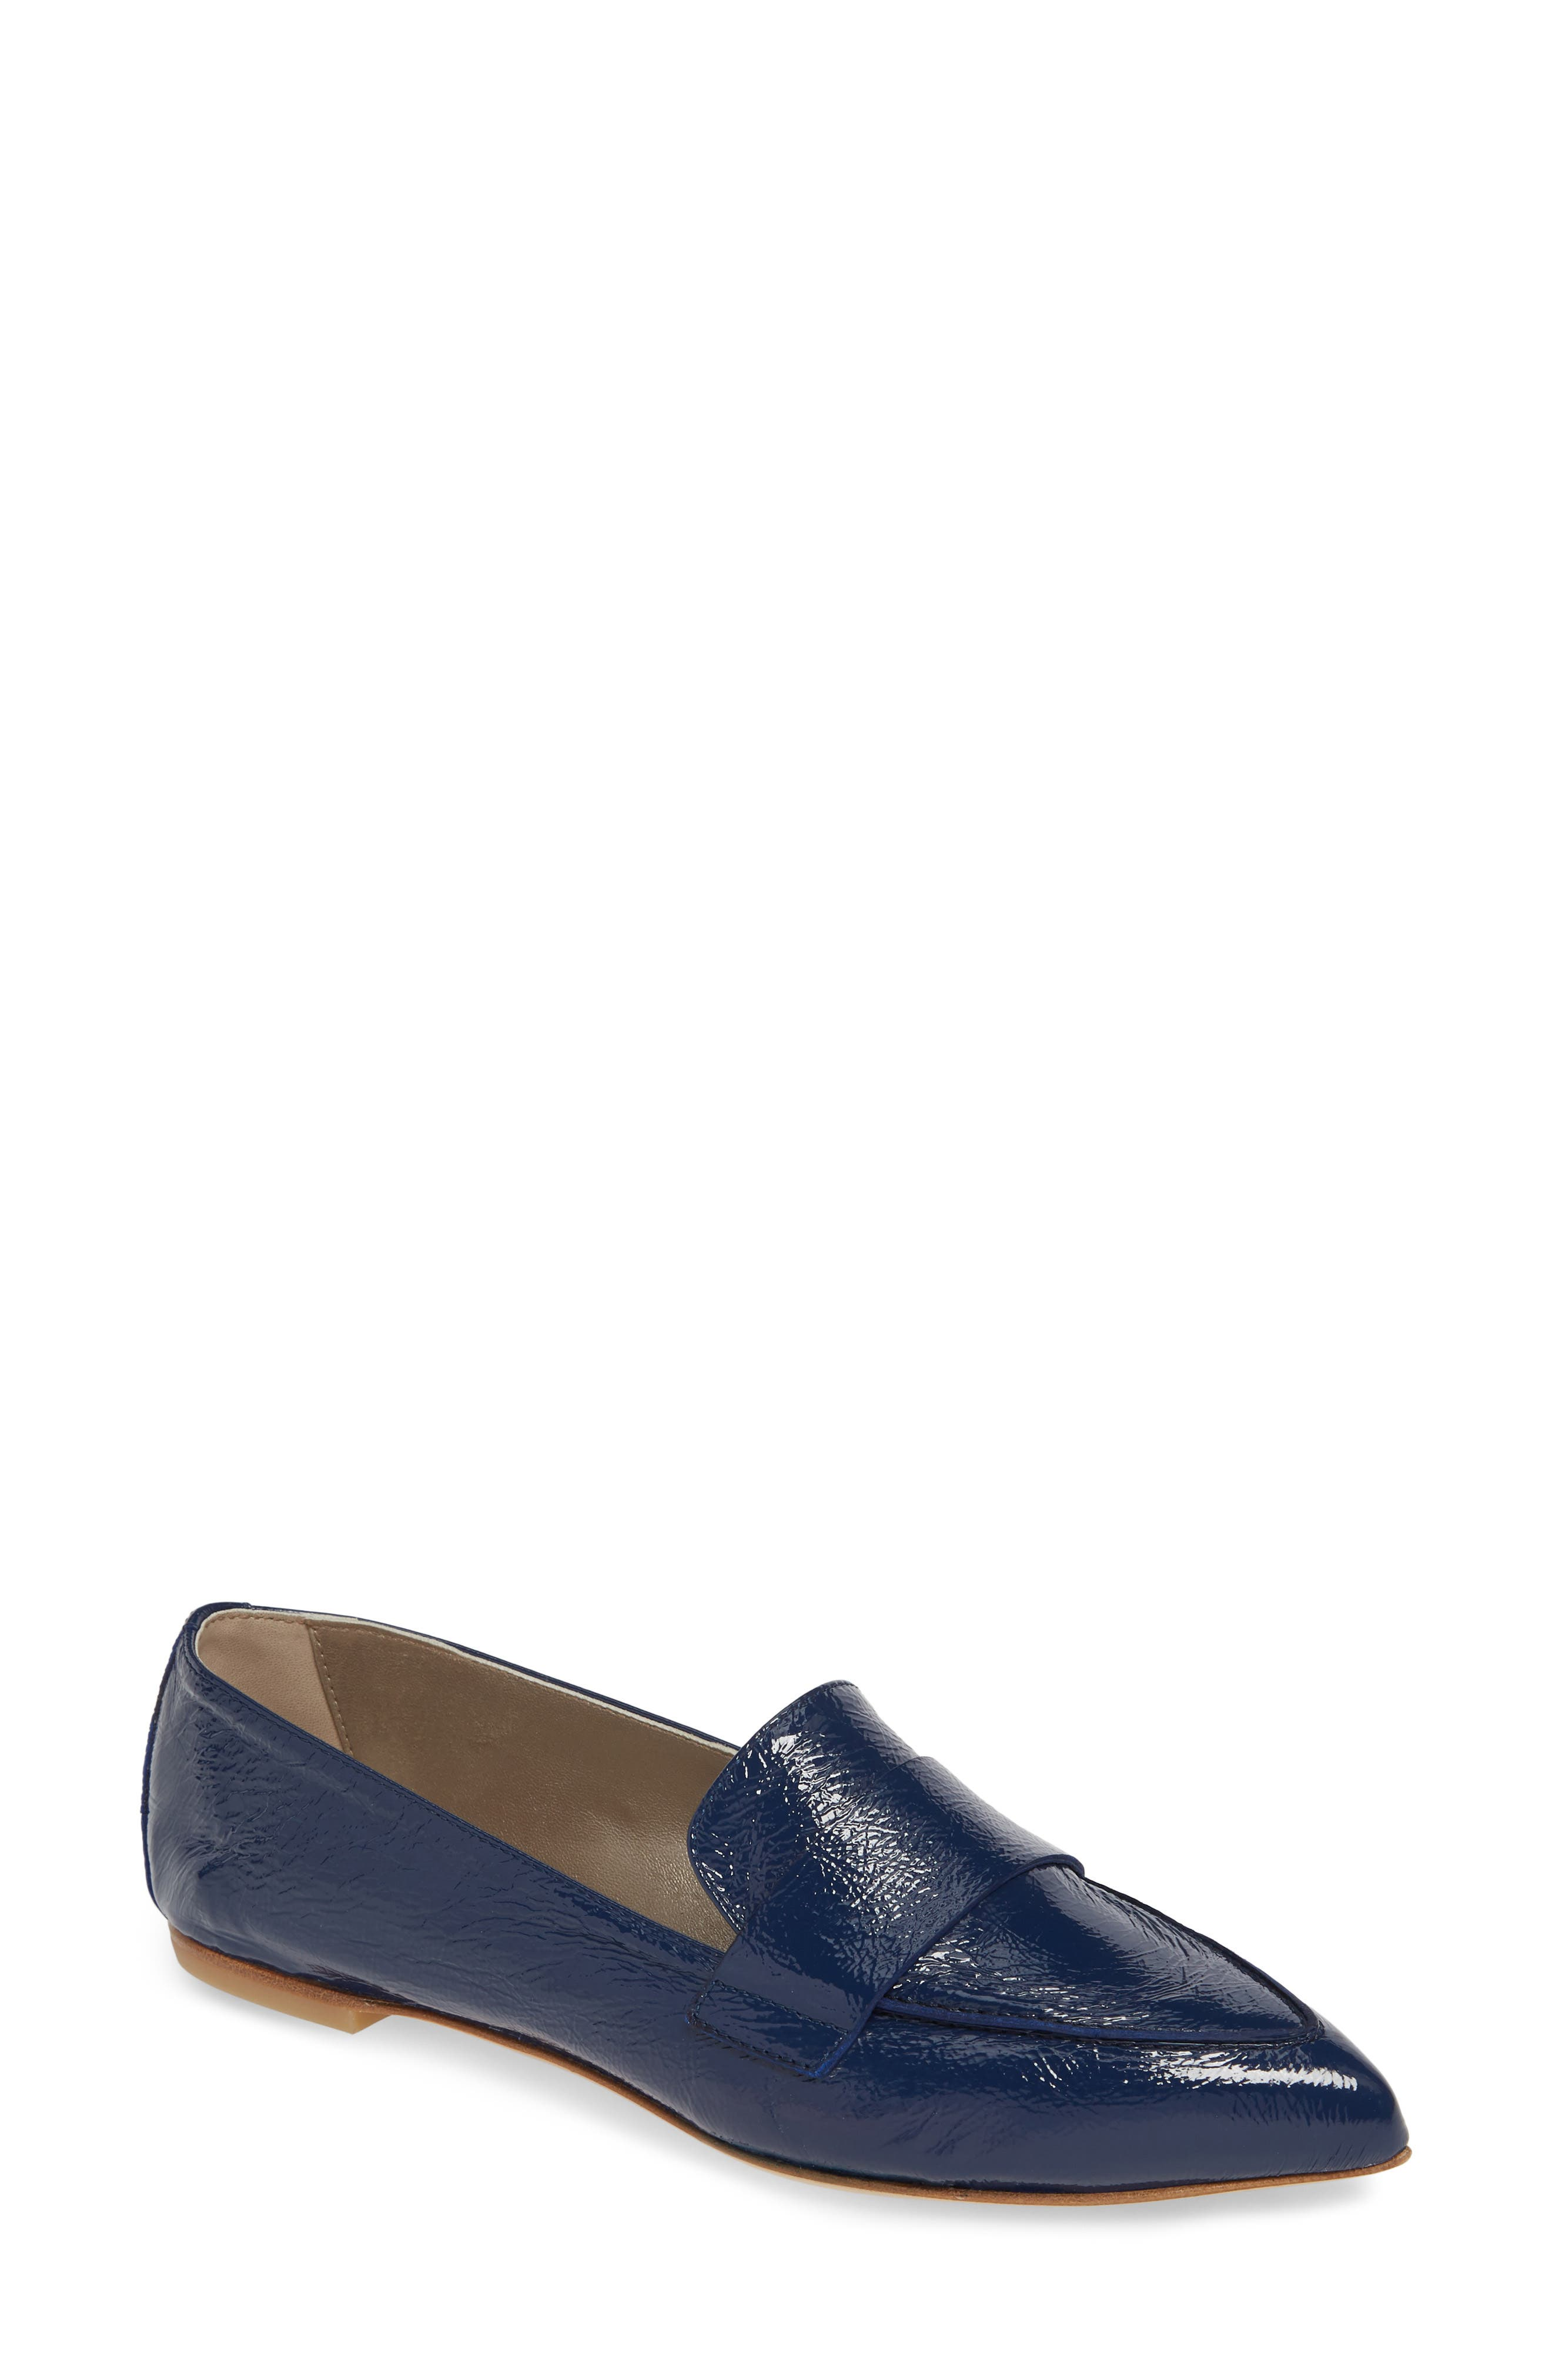 AGL, Softy Pointy Toe Moccasin Loafer, Main thumbnail 1, color, OCEAN PATENT